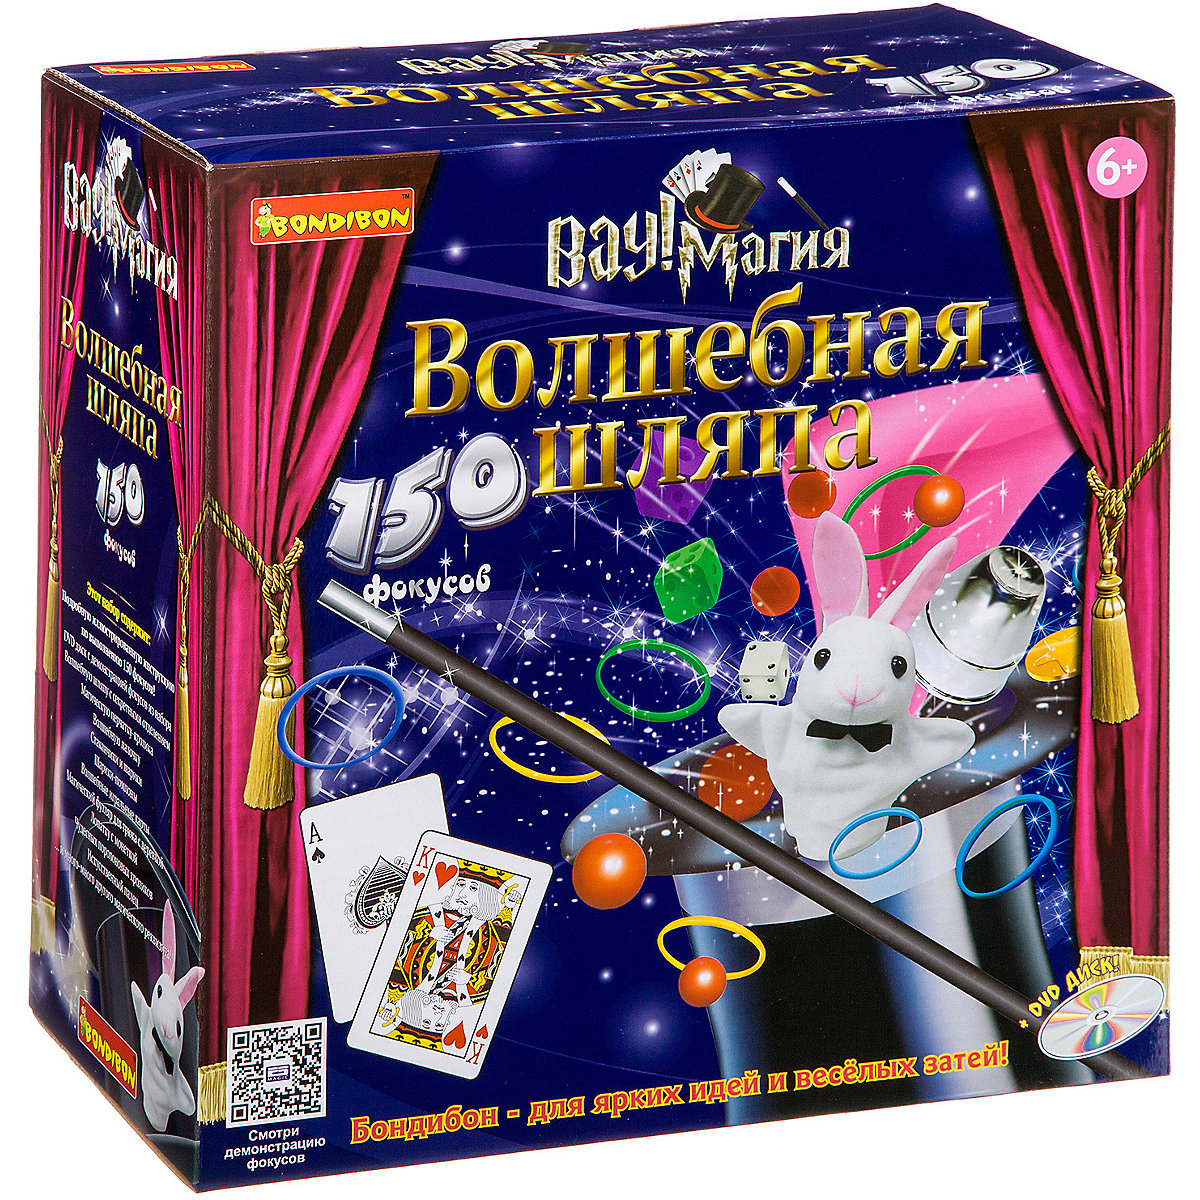 Bondibon Science 10367340 Experiments for children Educational toys Training toy Learning & Education science education